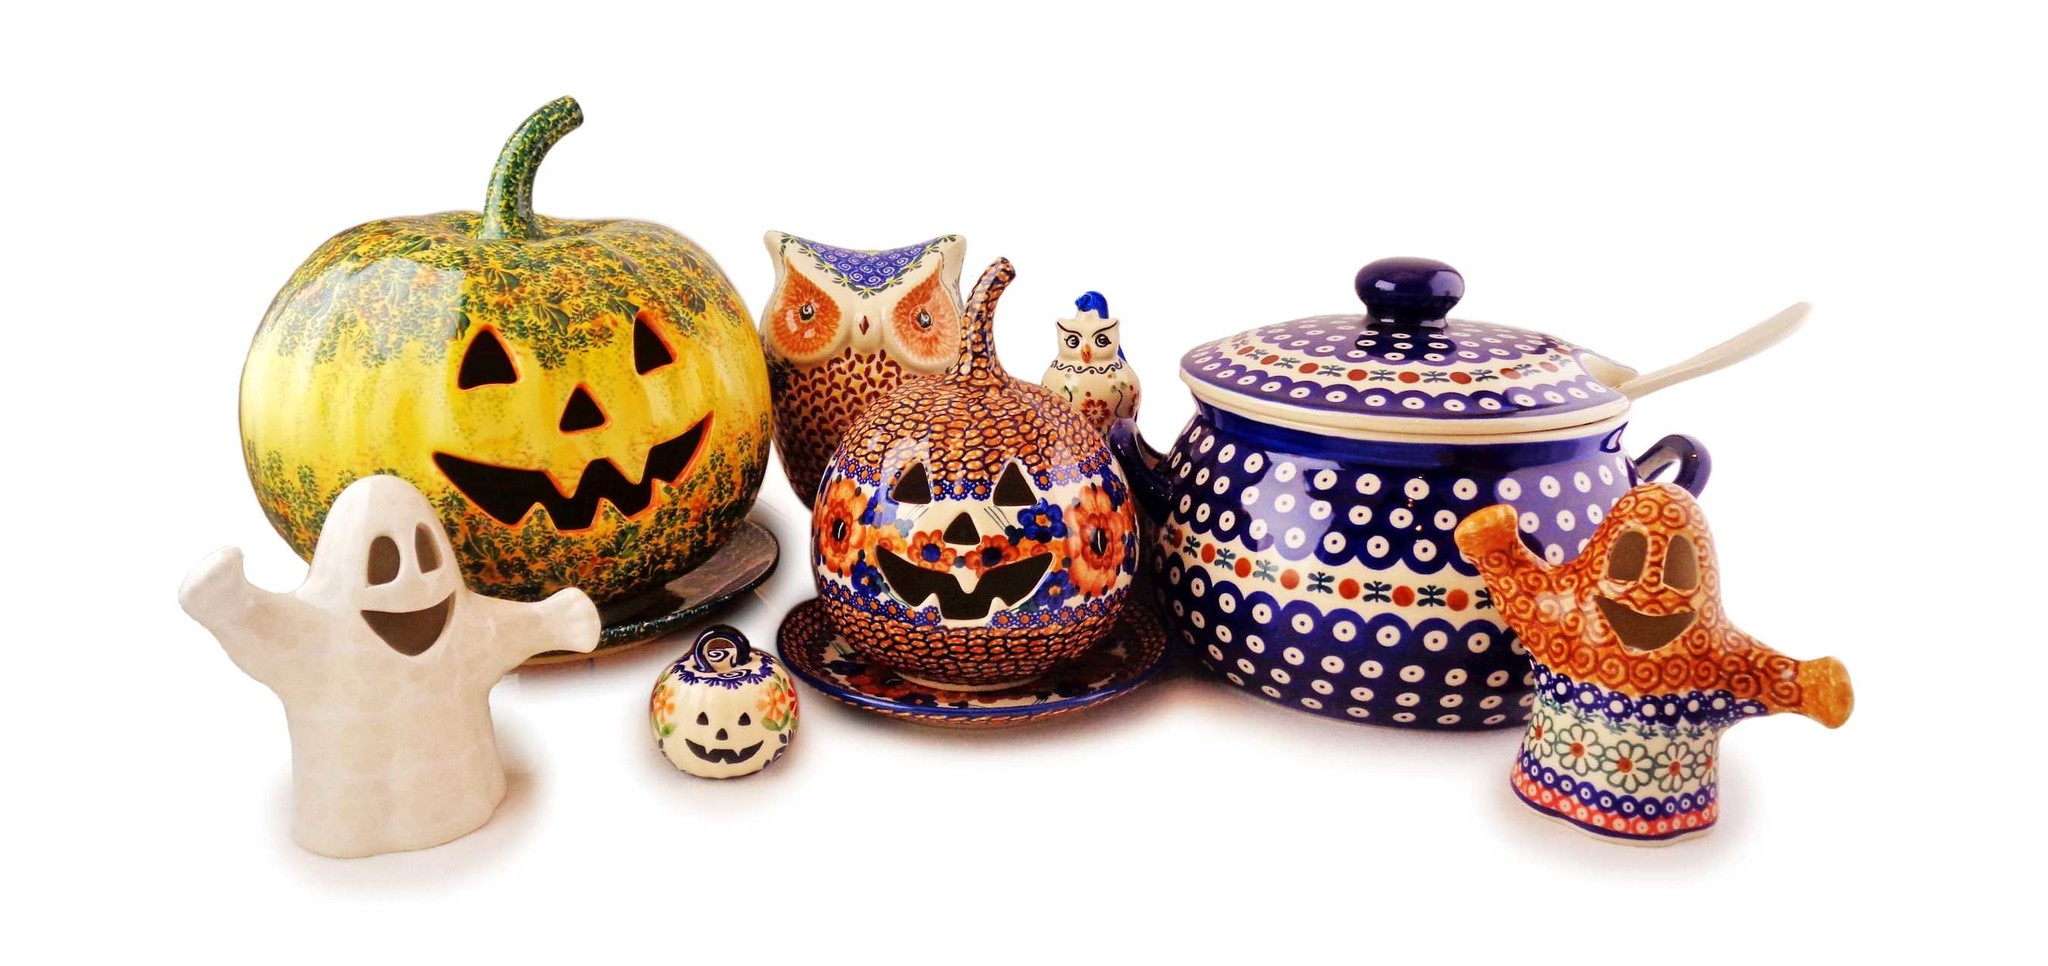 Decorate Your Home With Fall Polish Pottery Patterns